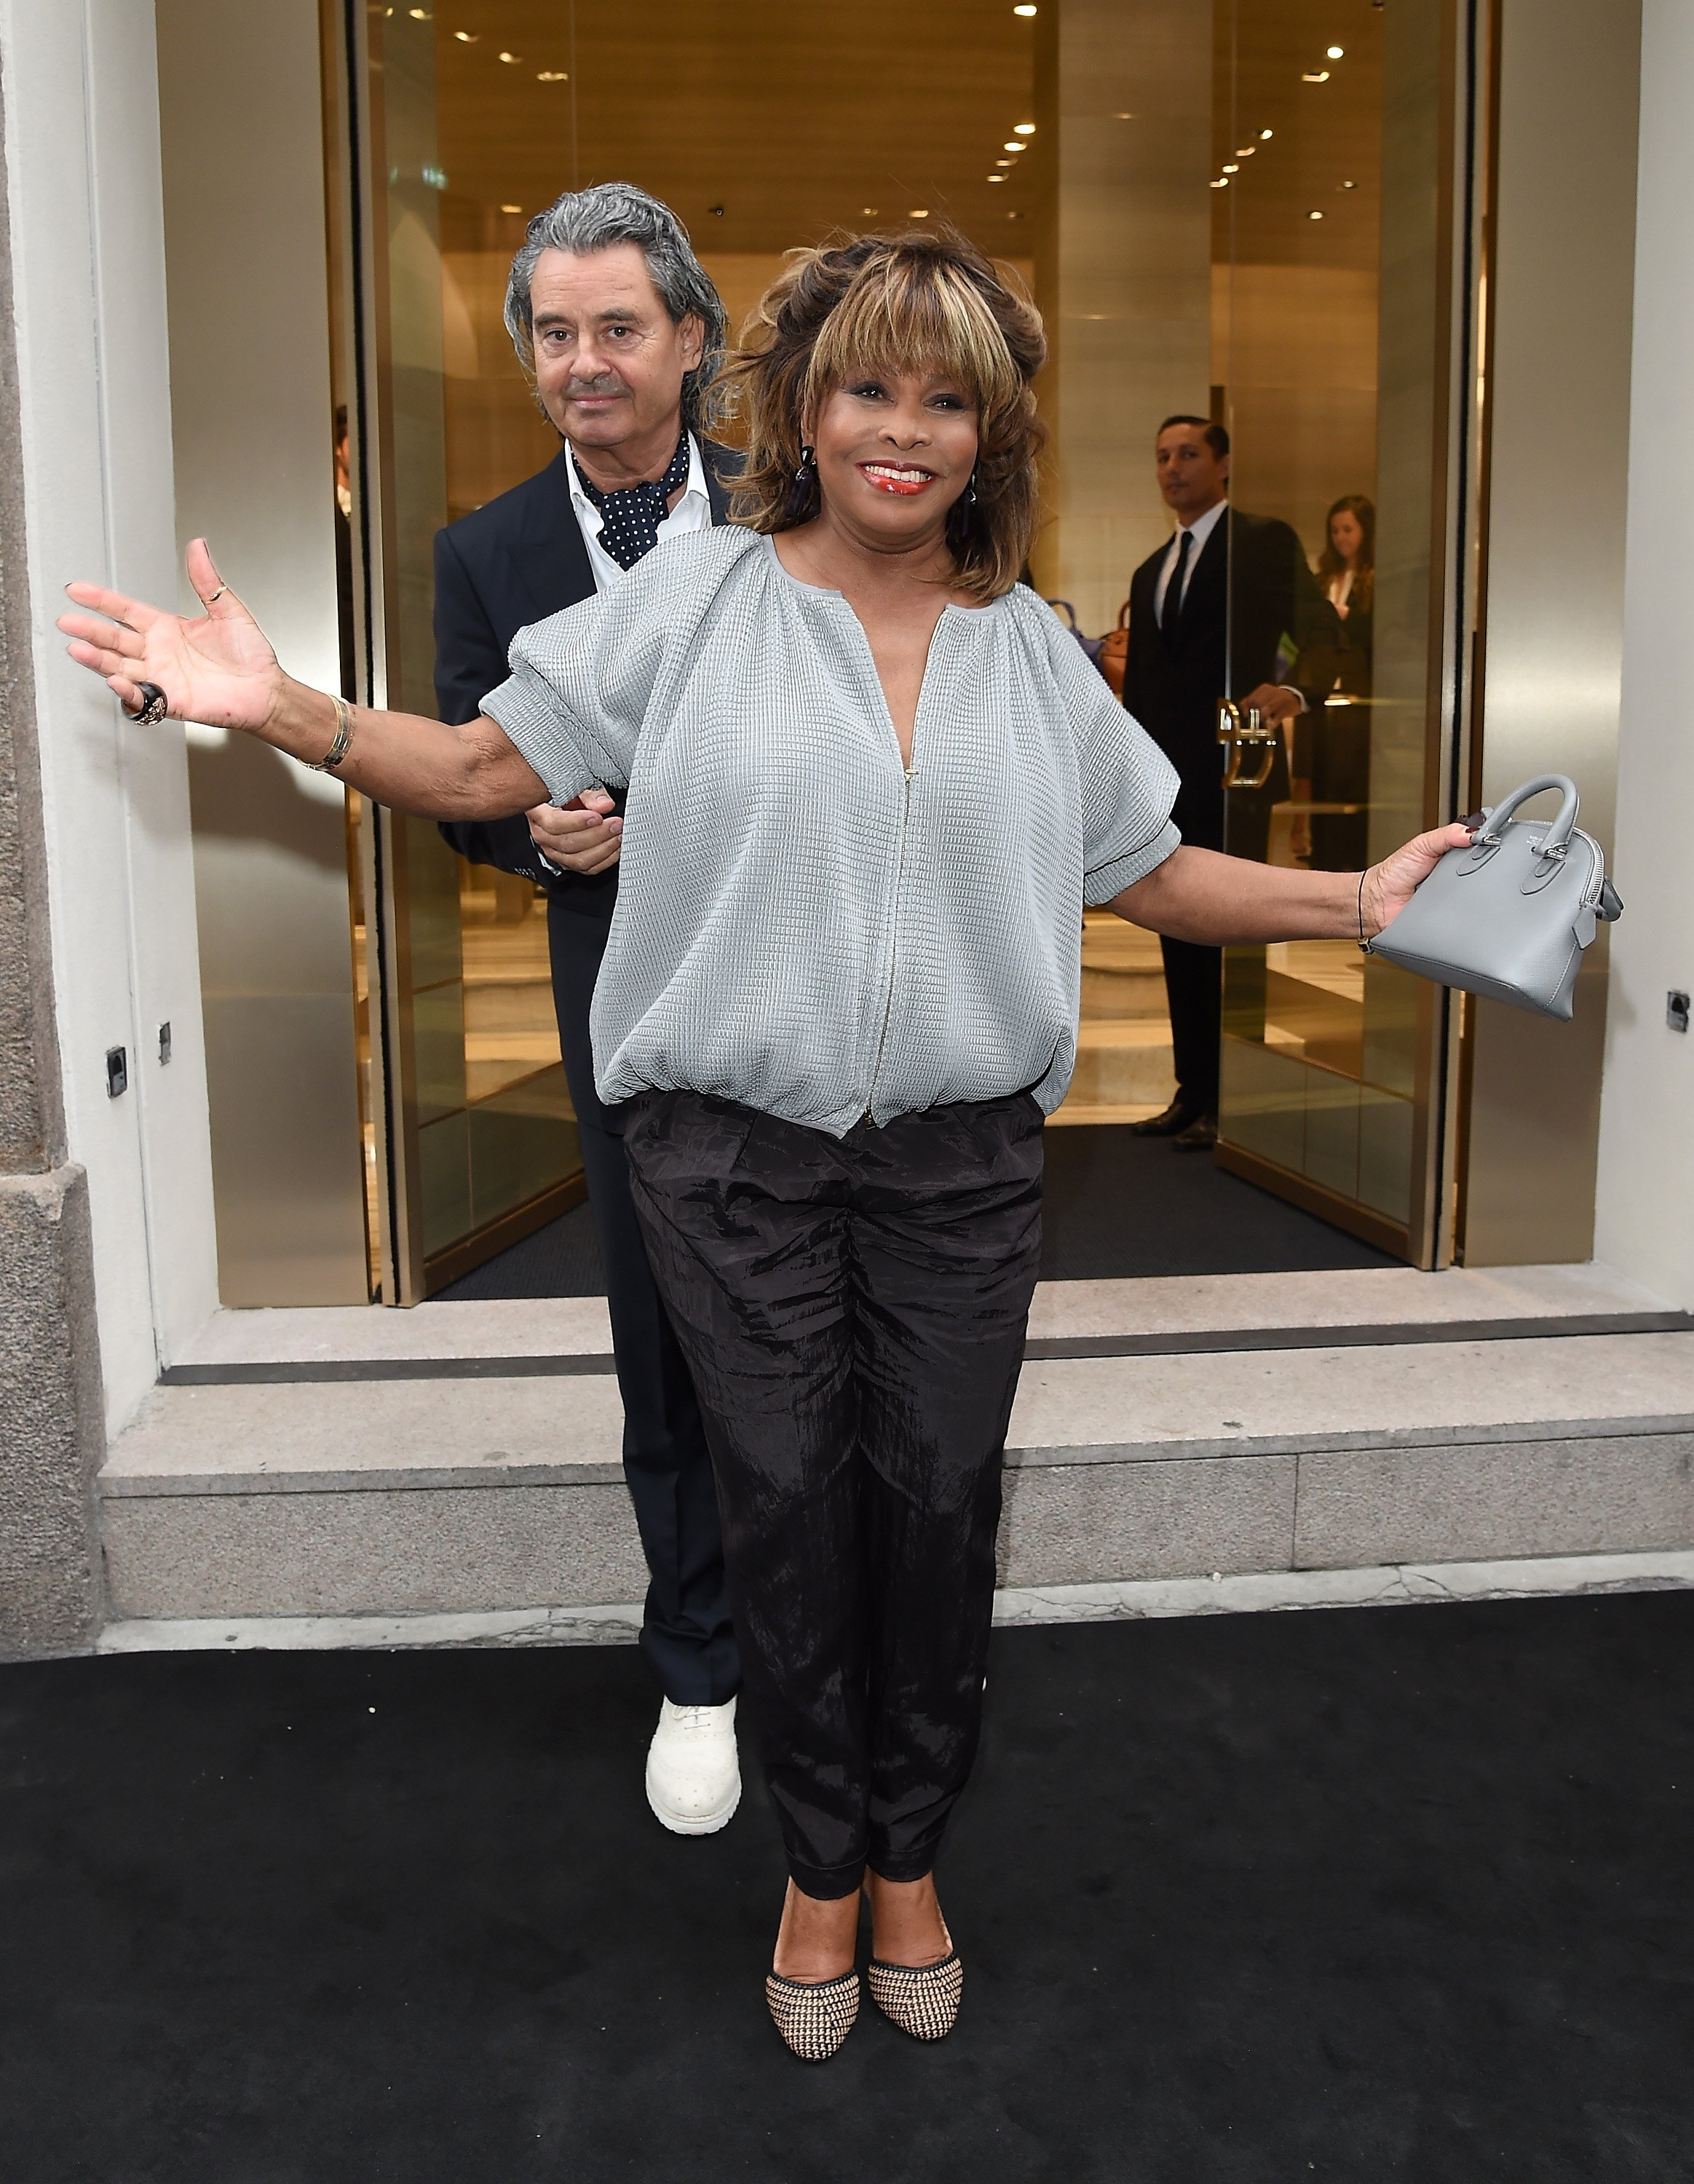 Tina Turner and Erwin Bach at the Giorgio Armani 40th Anniversary Boutique Cocktail Reception on April 29, 2015 in Milan, Italy. | Photo: Getty Images